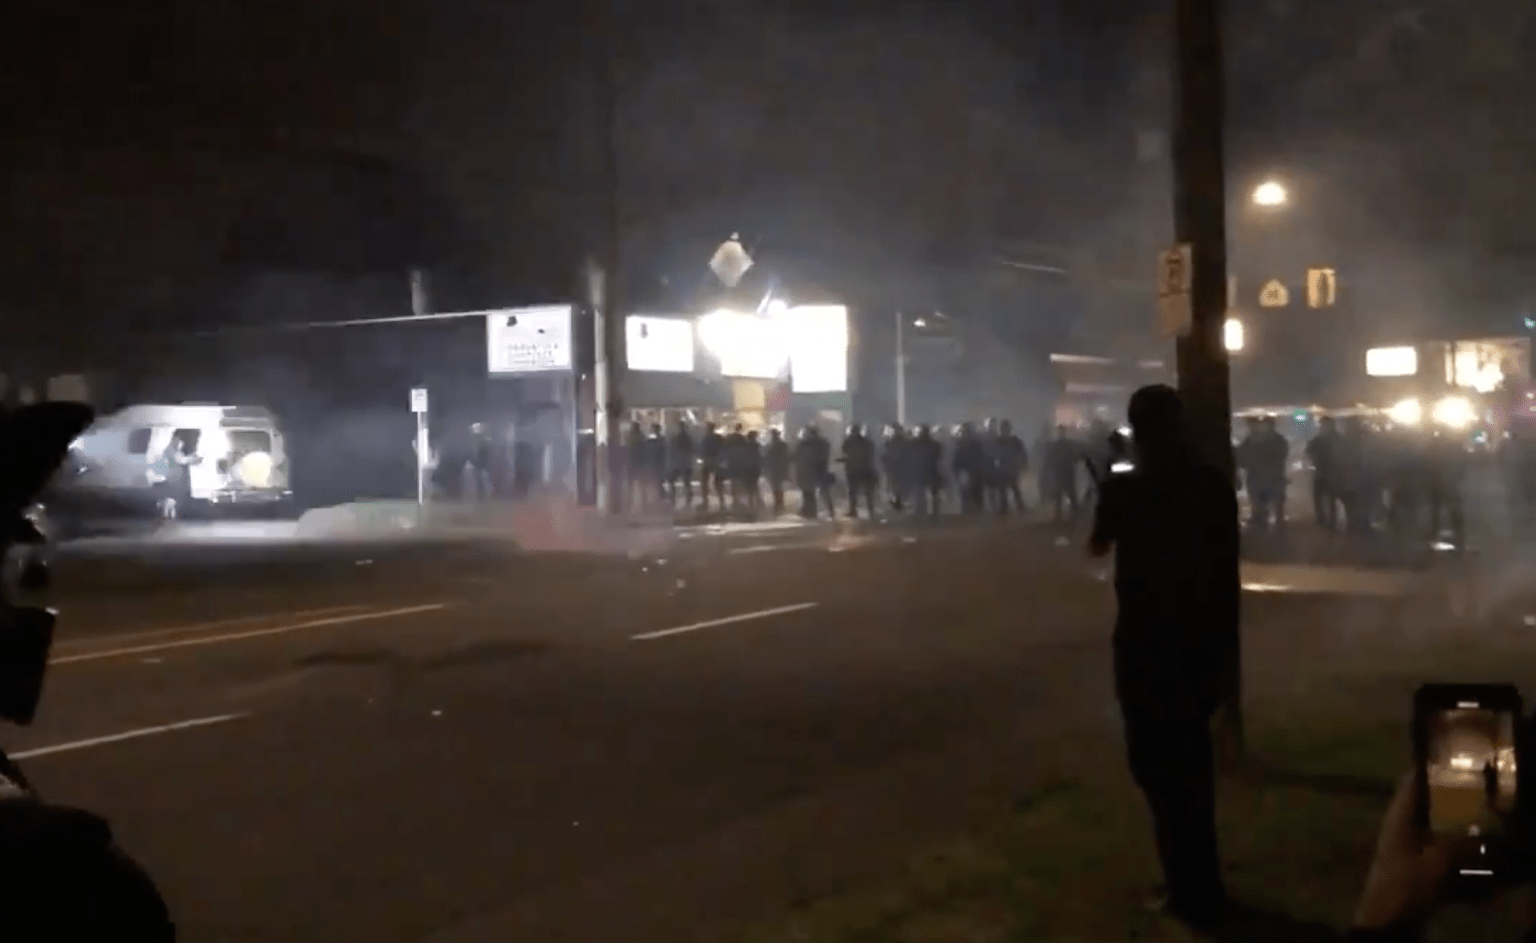 Riots in Portland once again, fires burned and rioters were said to have thrown 'baseball sized rocks' at police